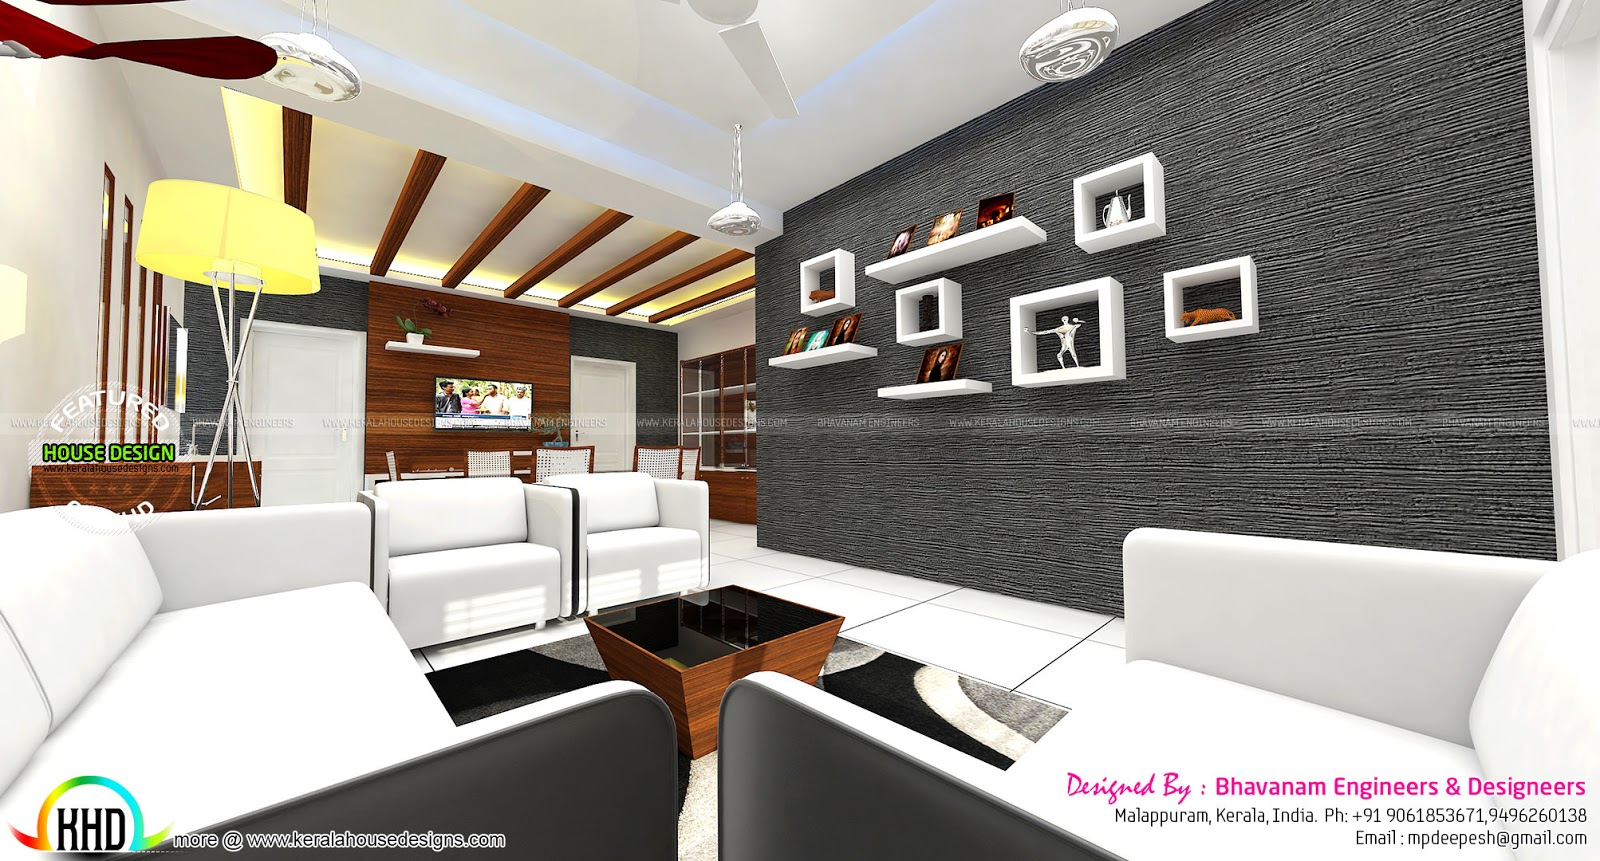 Living room interior decors ideas kerala home design and for Picture of interior designs of house